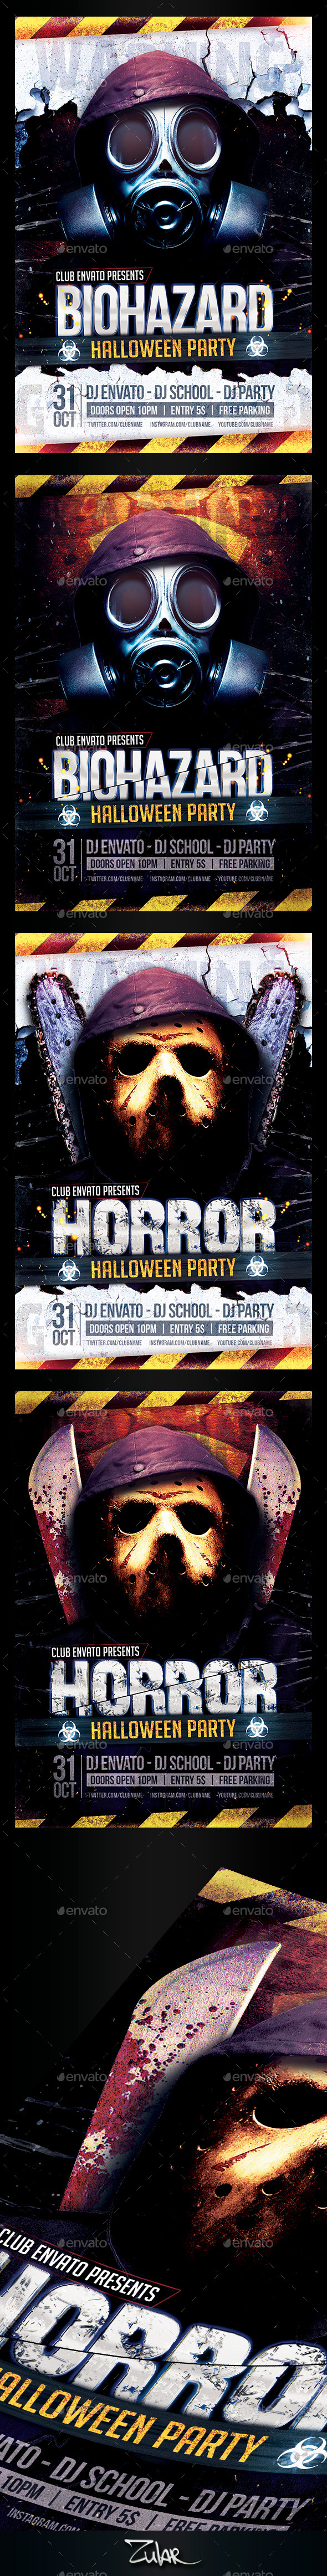 GraphicRiver Horror & Biohazard Halloween Party Flyers 9134964